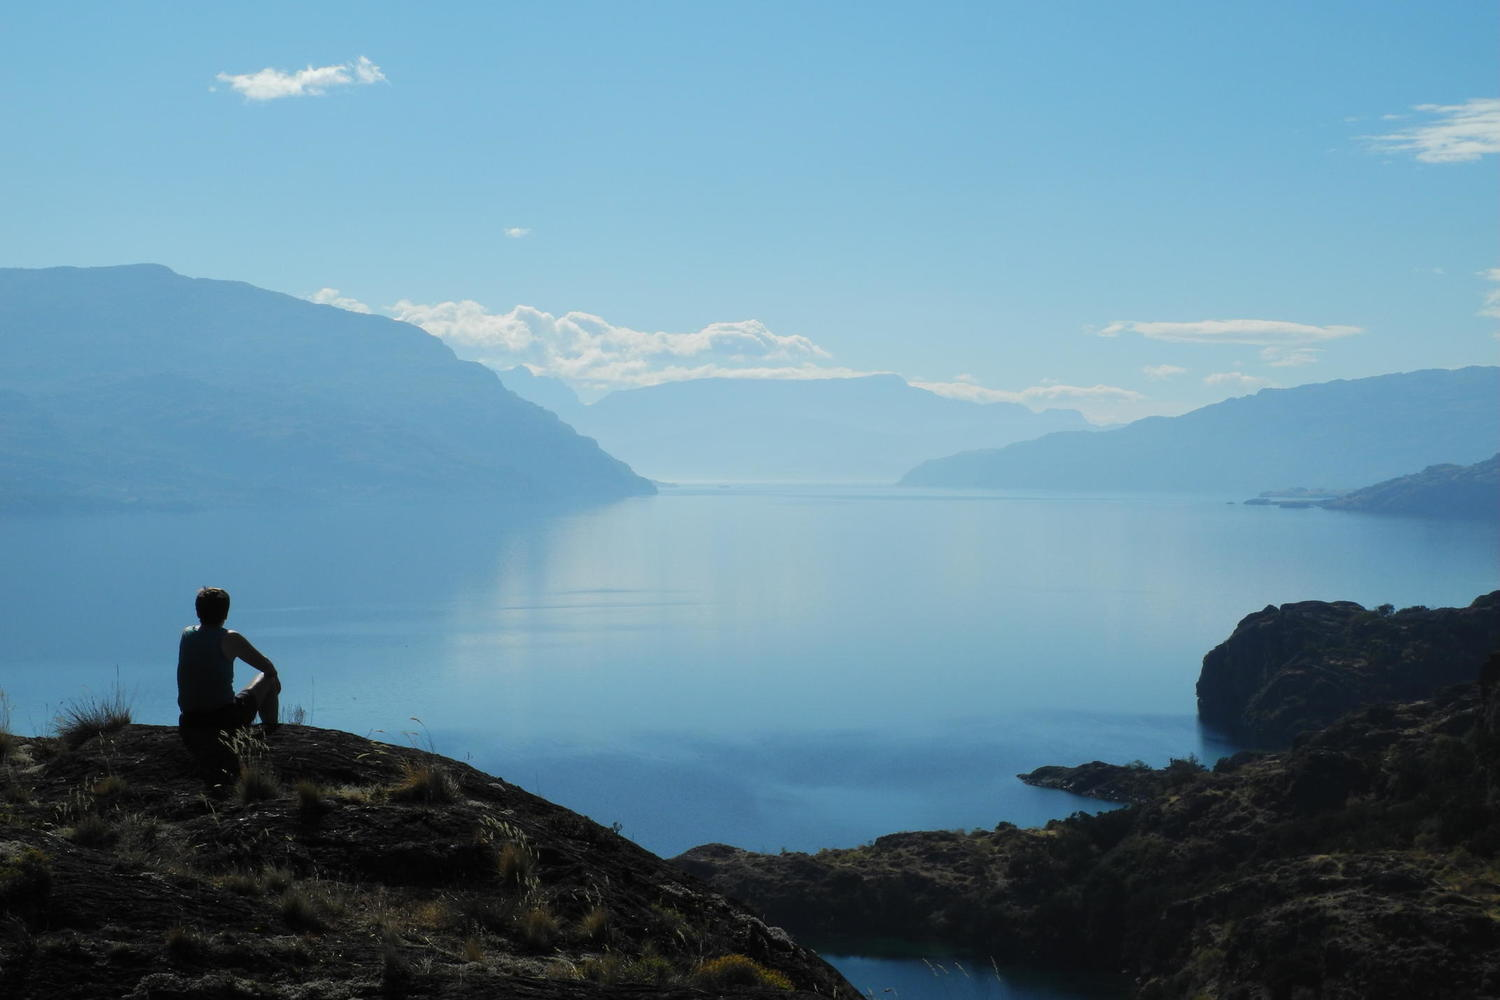 Contemplating the shimmering surface of Lago Cochrane